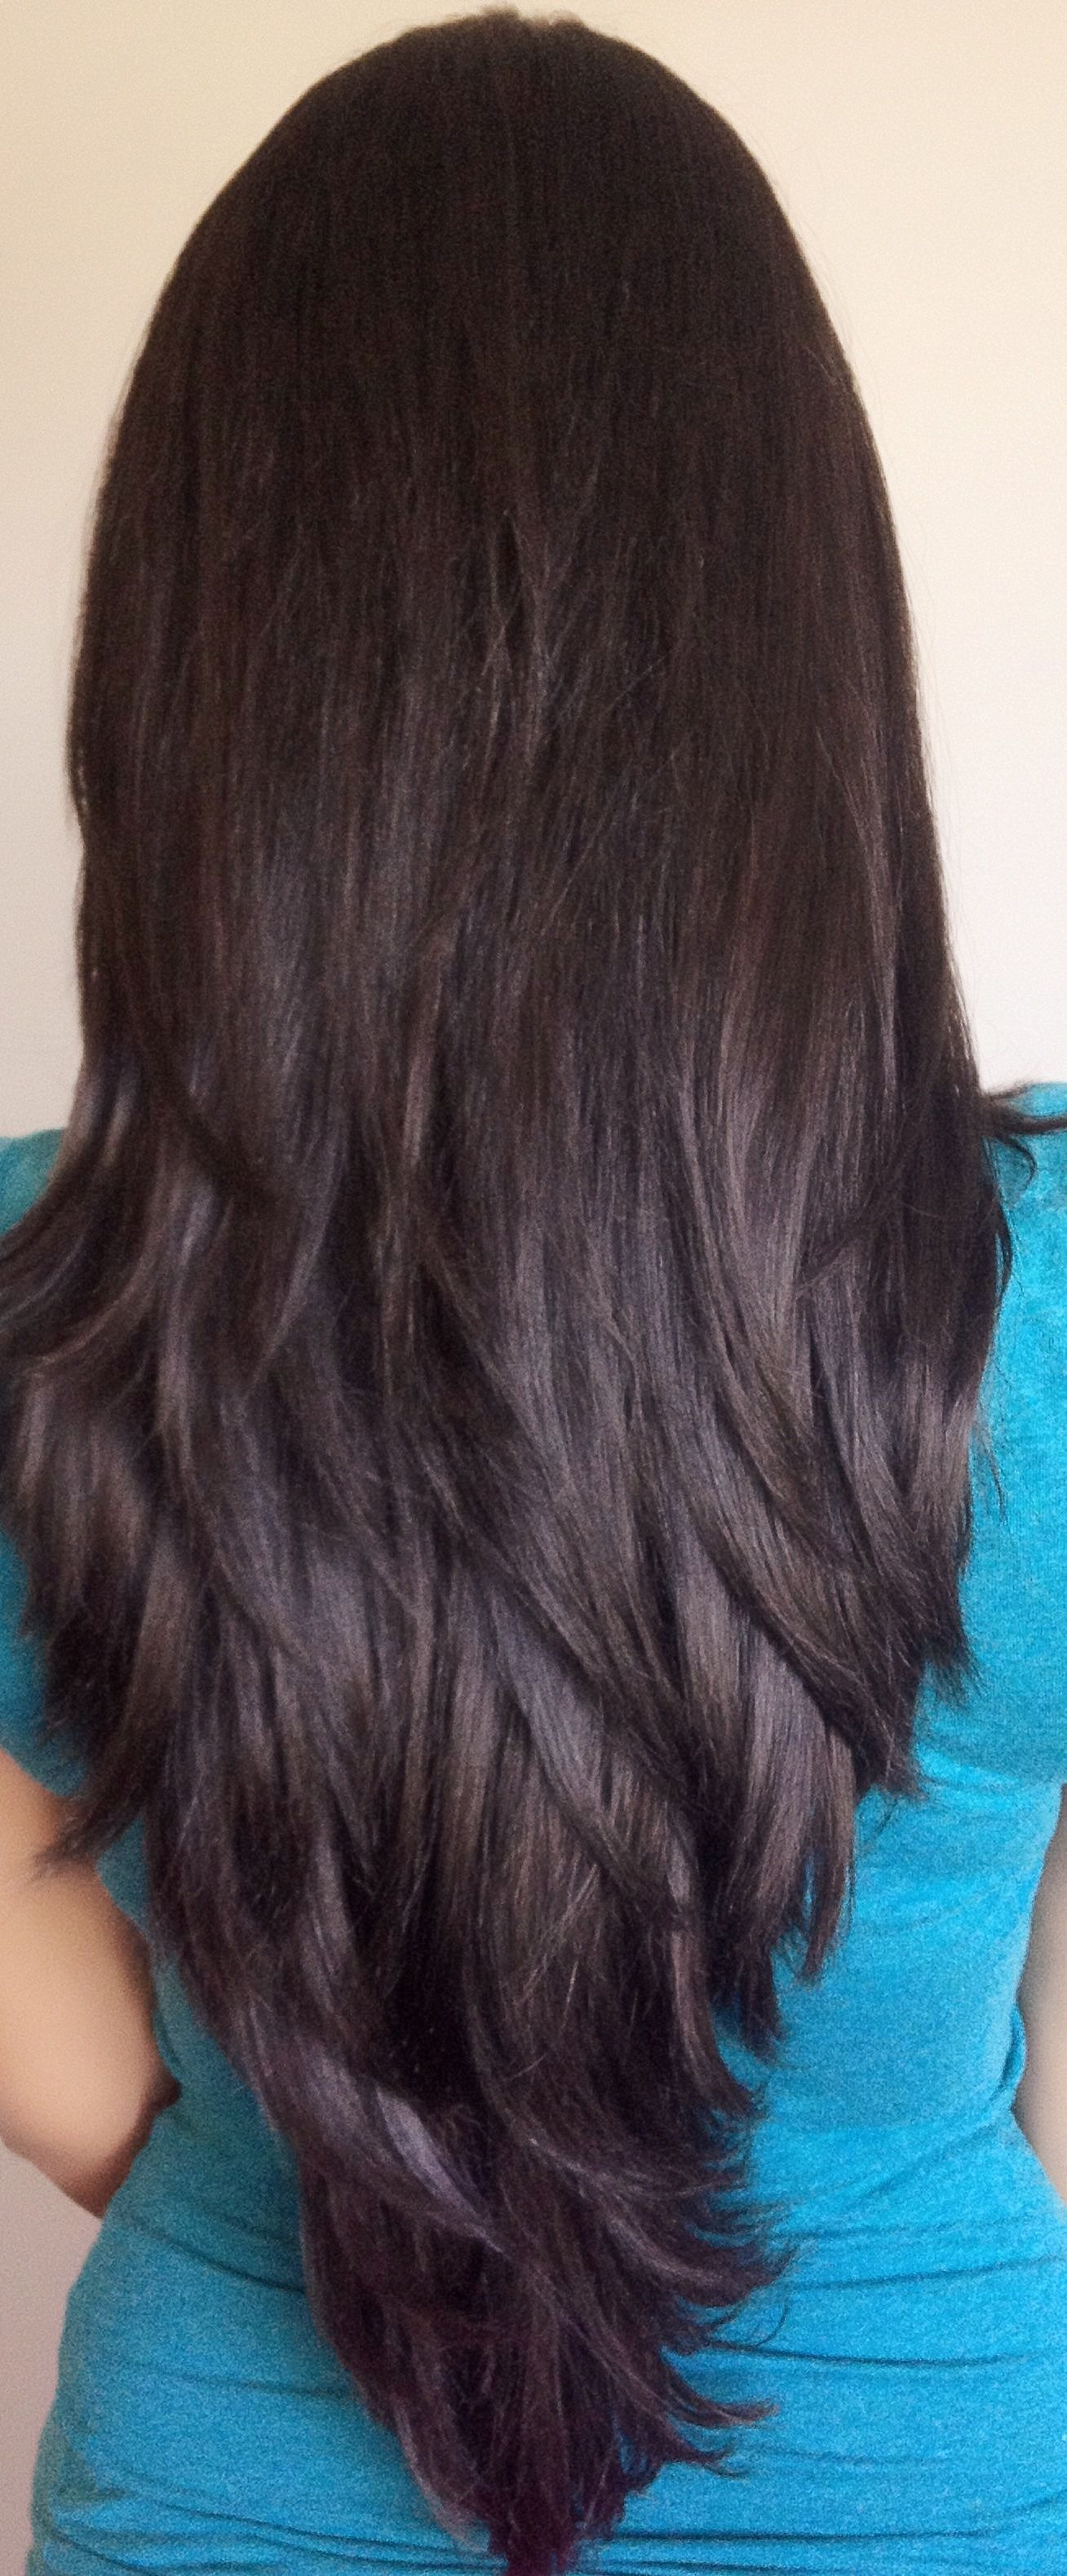 long layered haircuts back view - google search. my favorite type